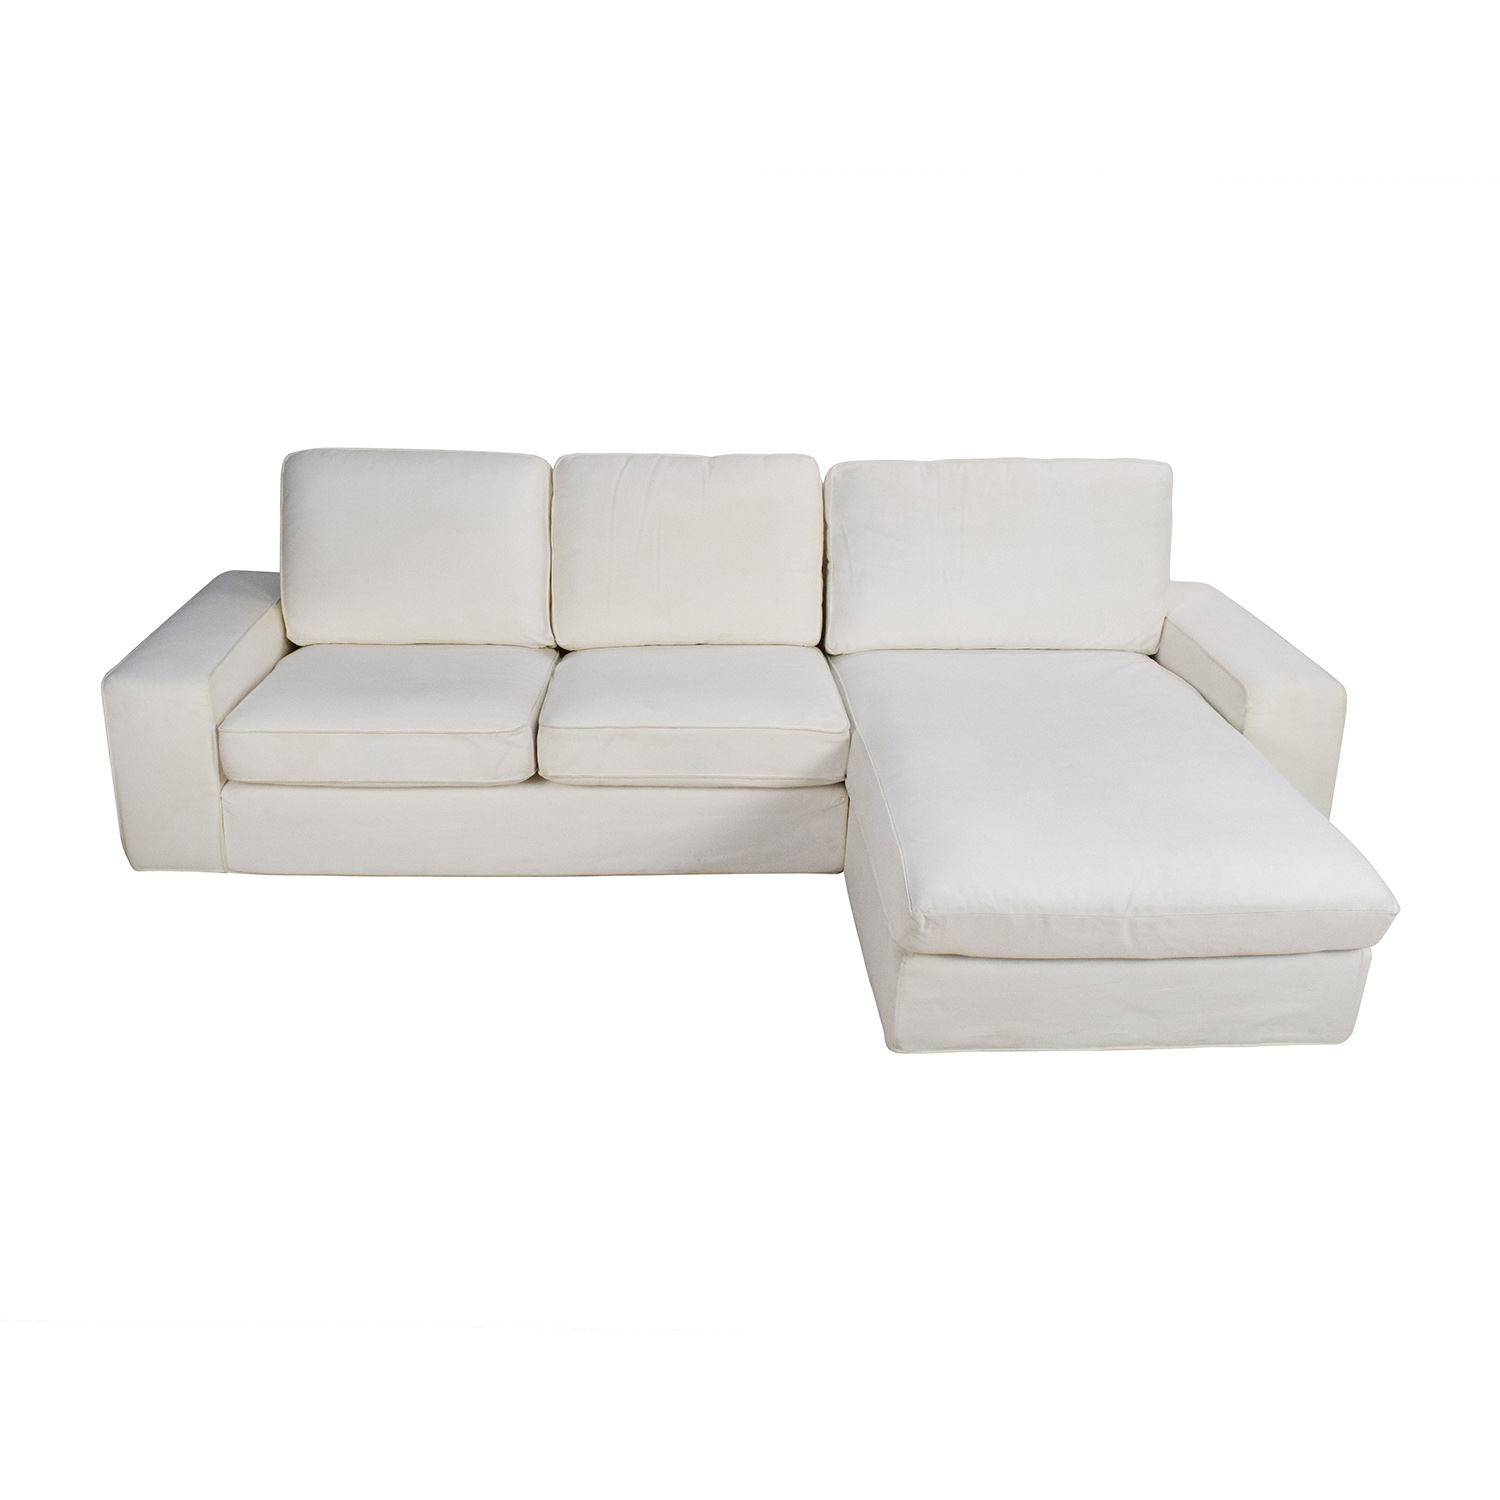 Buying A Second Hand Sofa 69 Off Ikea Ikea Kivik Sofa And Chaise Sofas